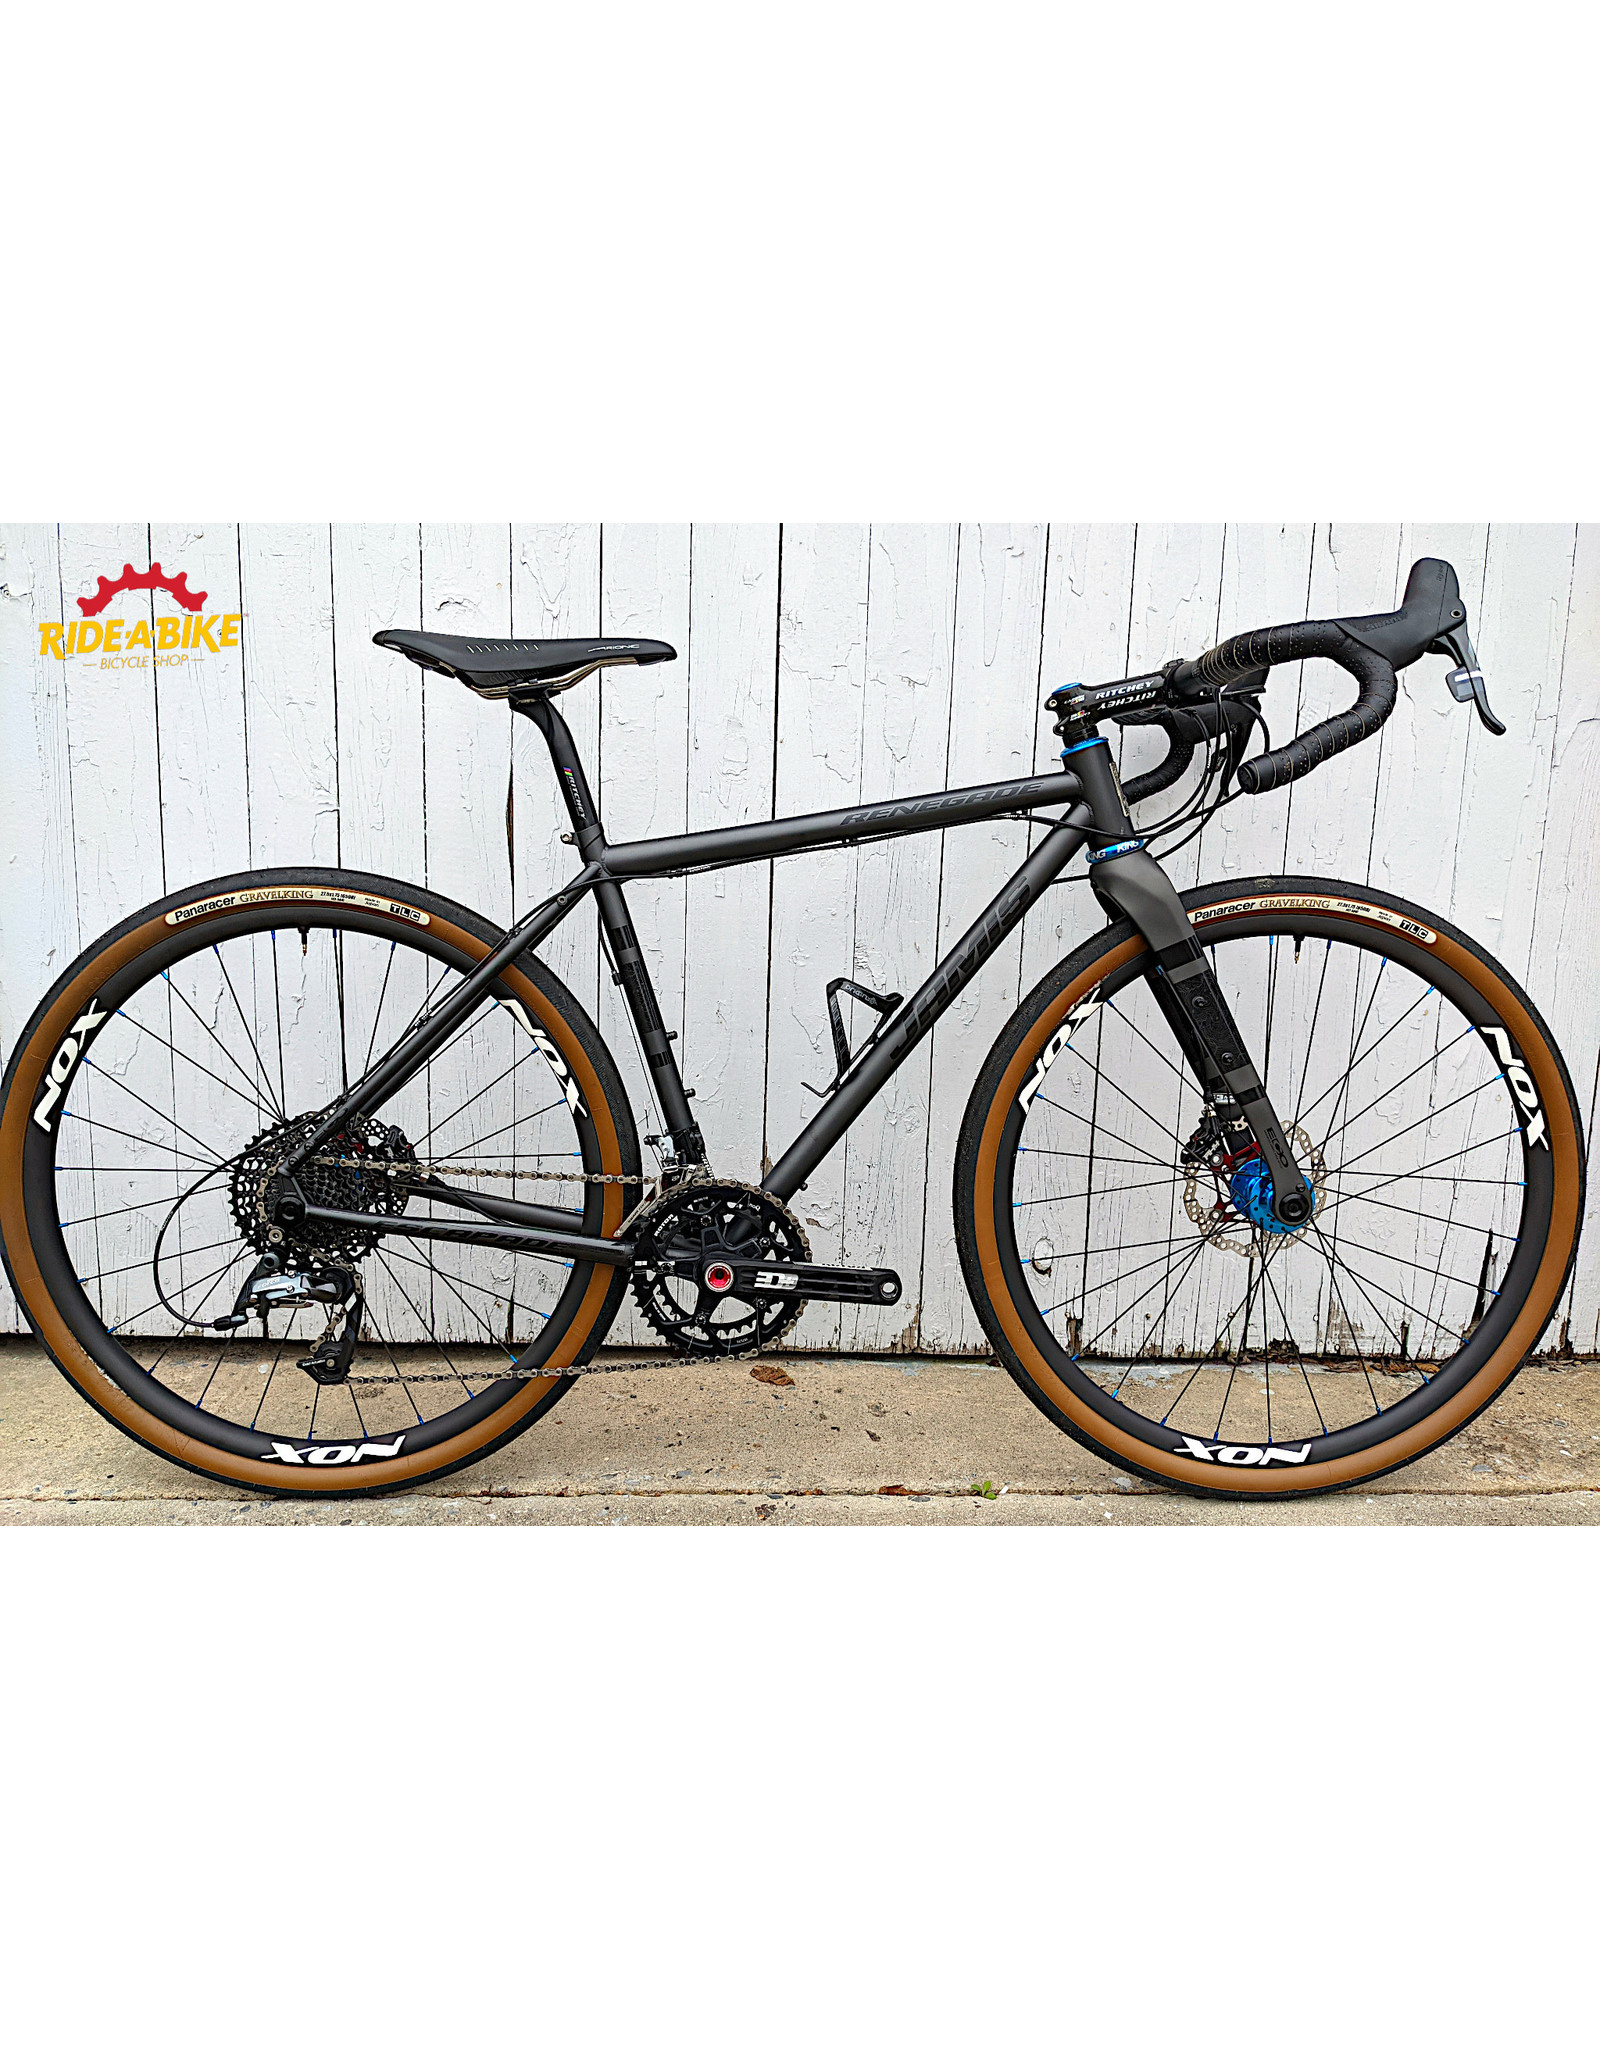 Jamis Renegade Escapade Custom Gravel Bike